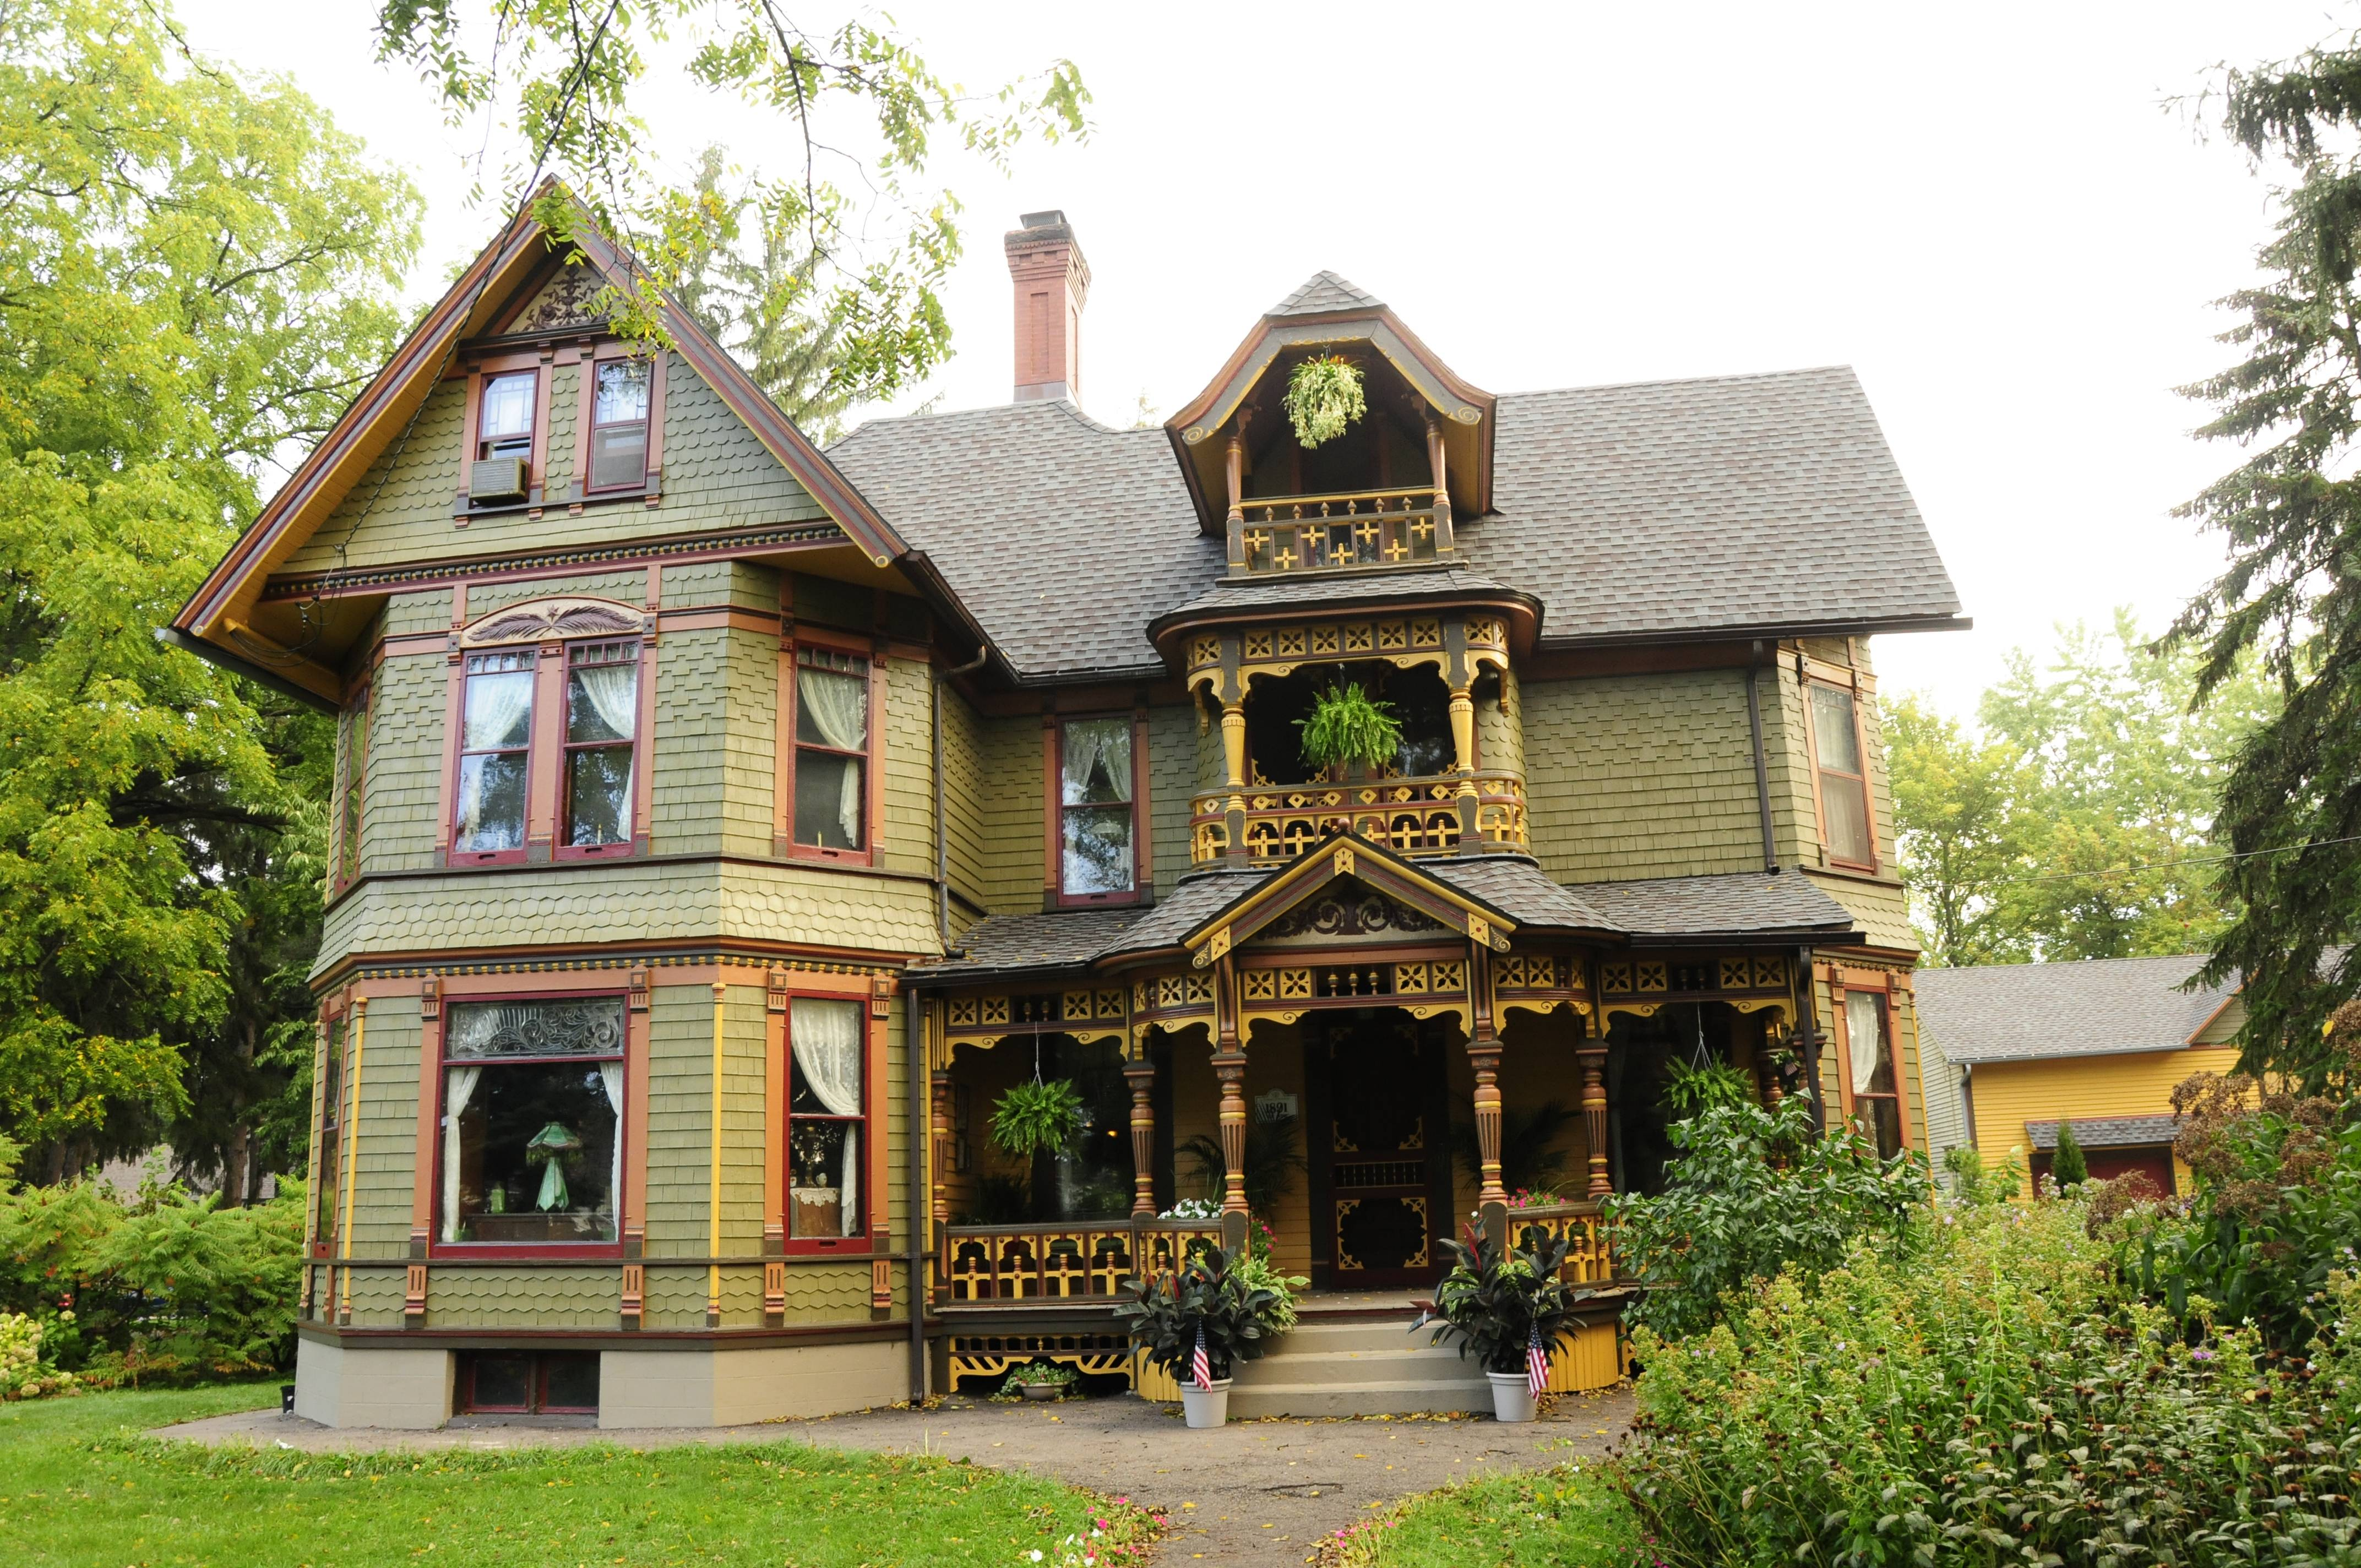 This home in Elgin was the grand prize winner of last year's CPCA Painted Ladies and her Court competition.